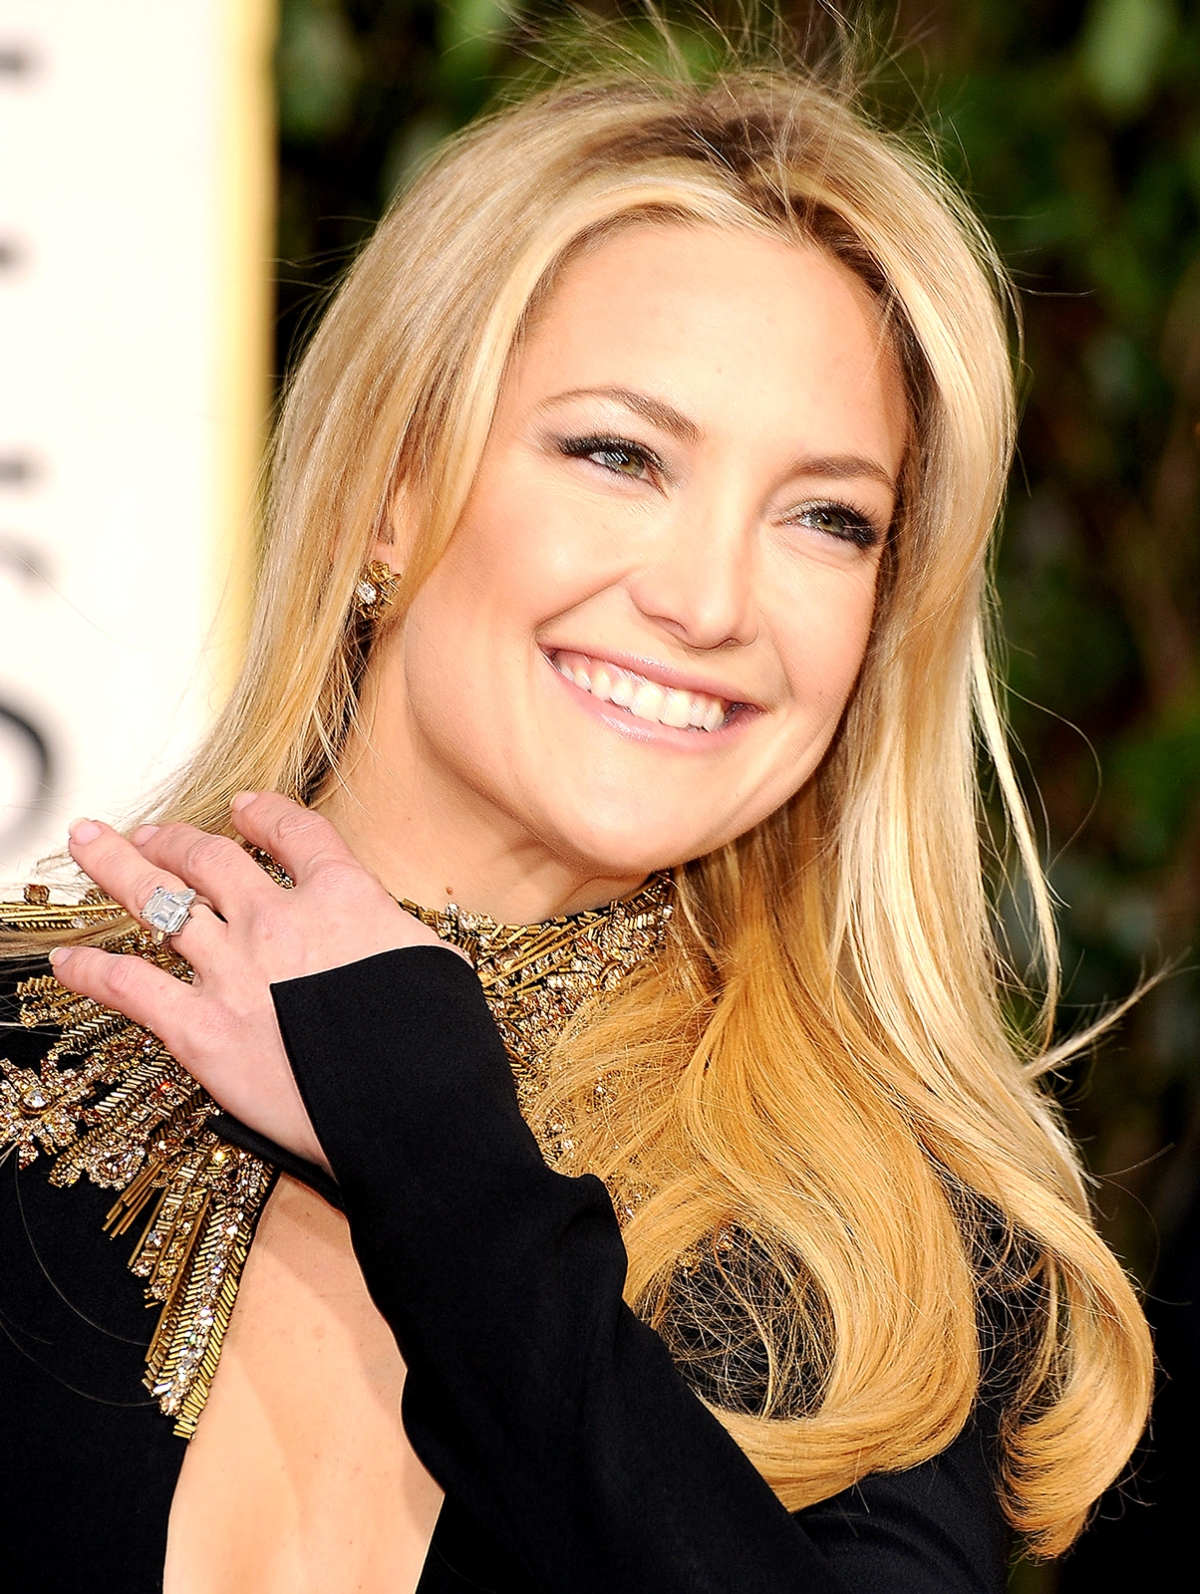 celeb rings crazy youtube watch engagement wedding